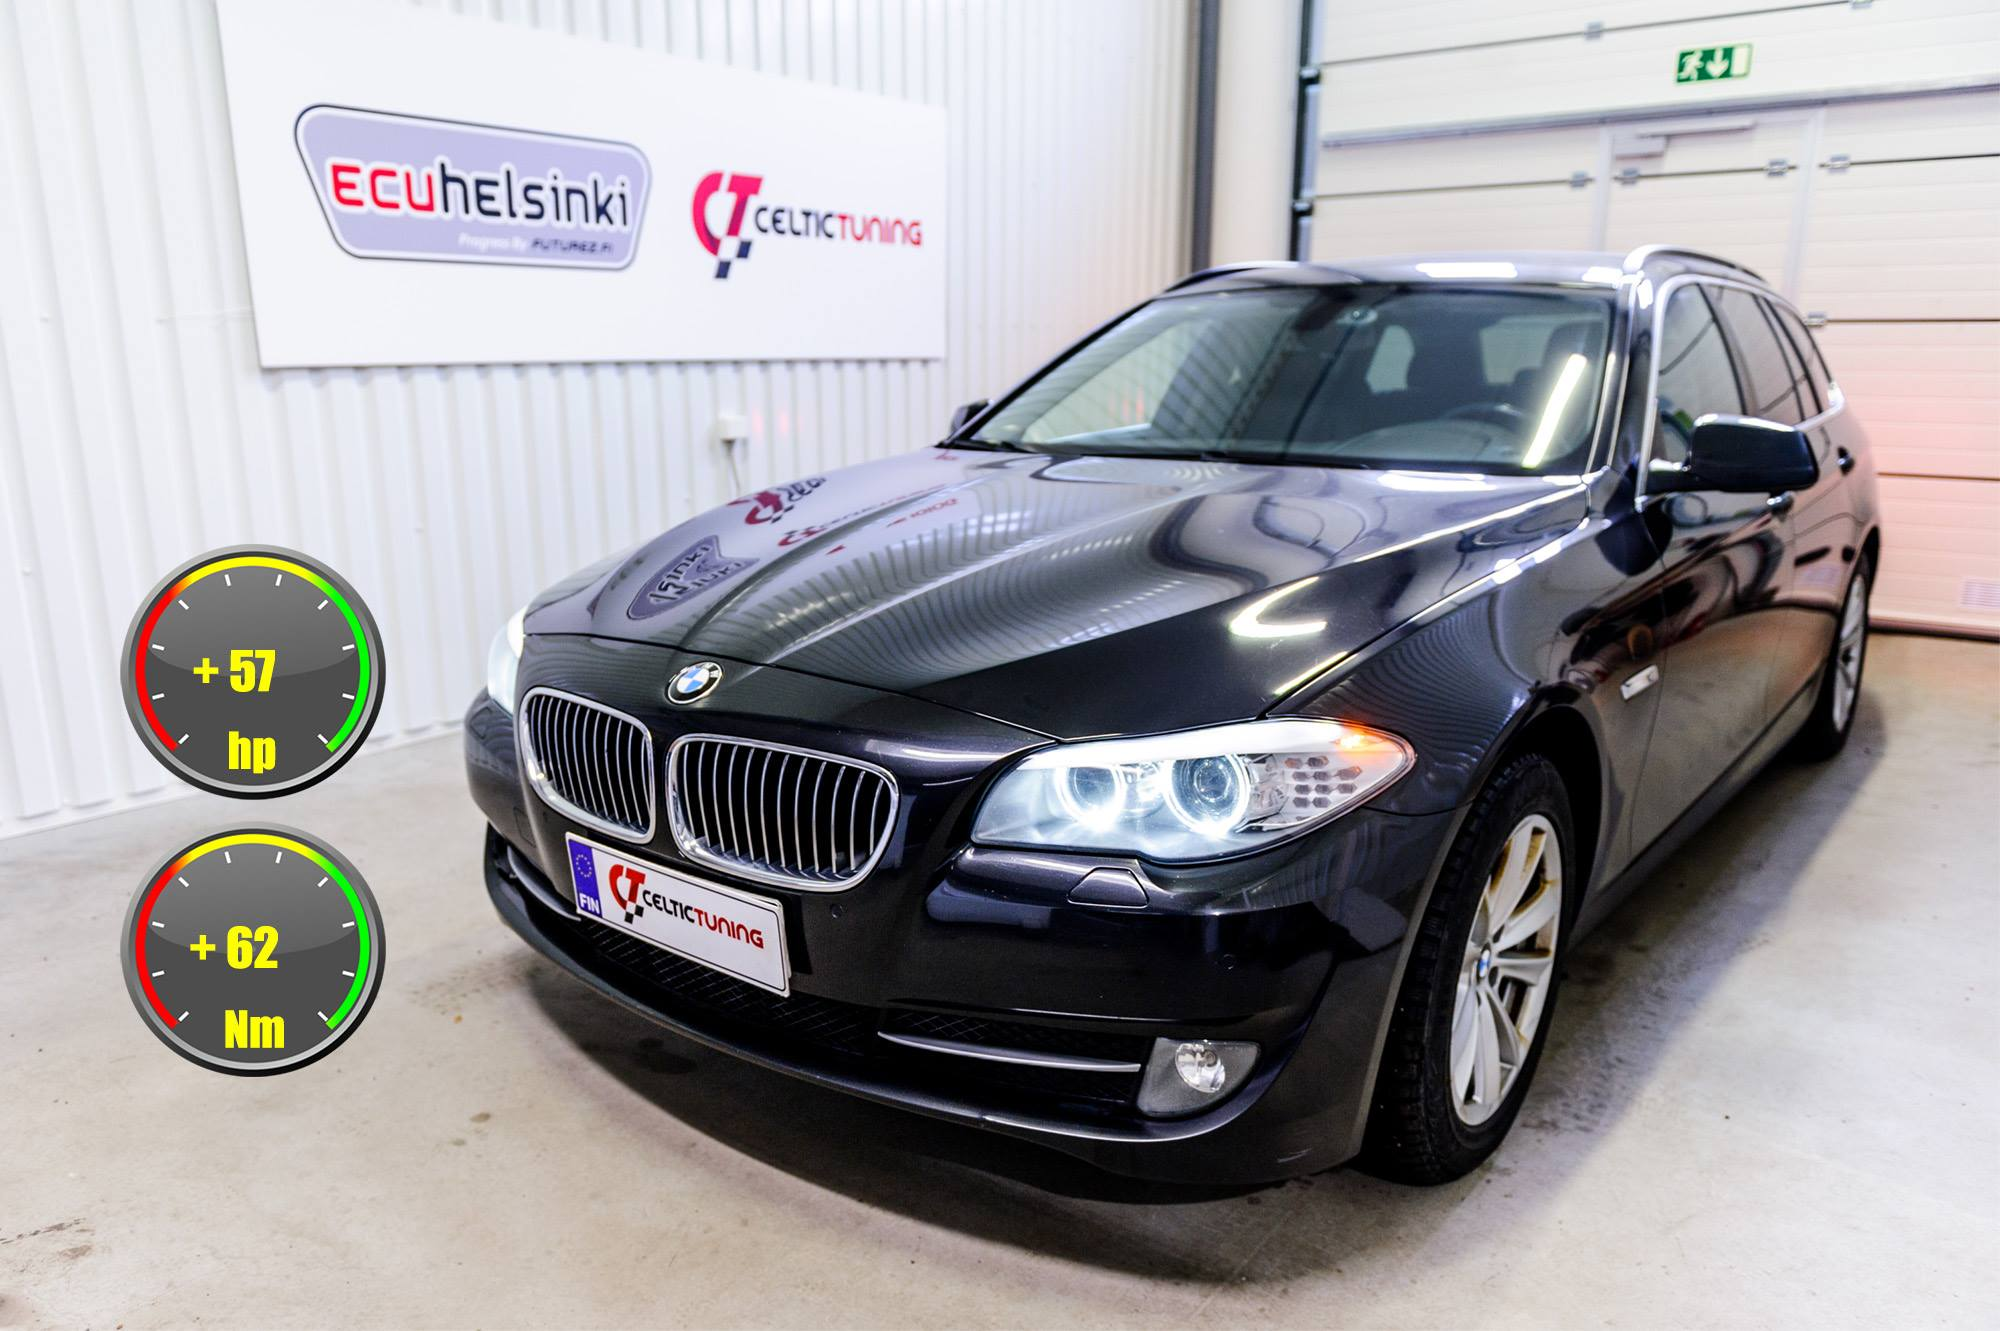 BMW 520D lastutus celtic tuning